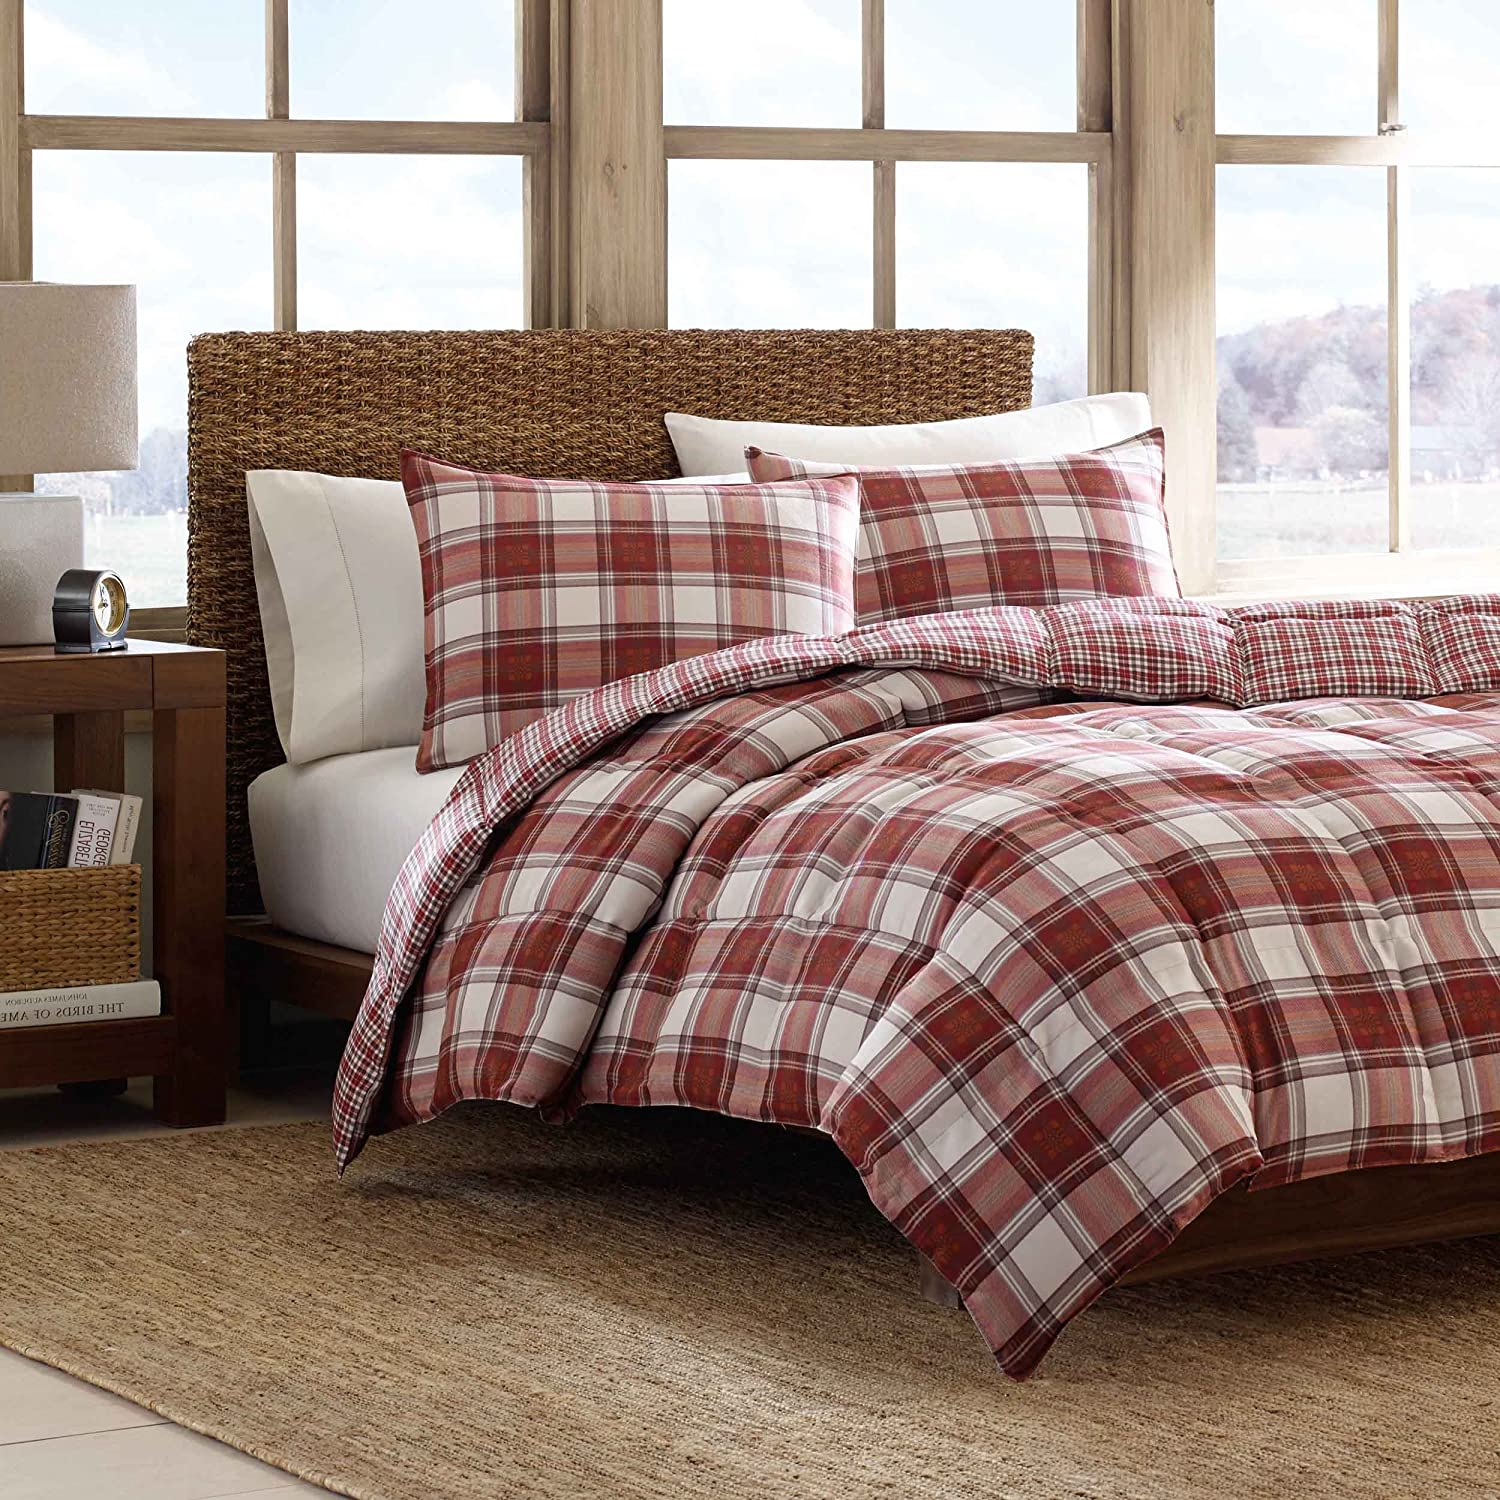 cabin bedding carstens comforter the red duvet cover set moose log plaid